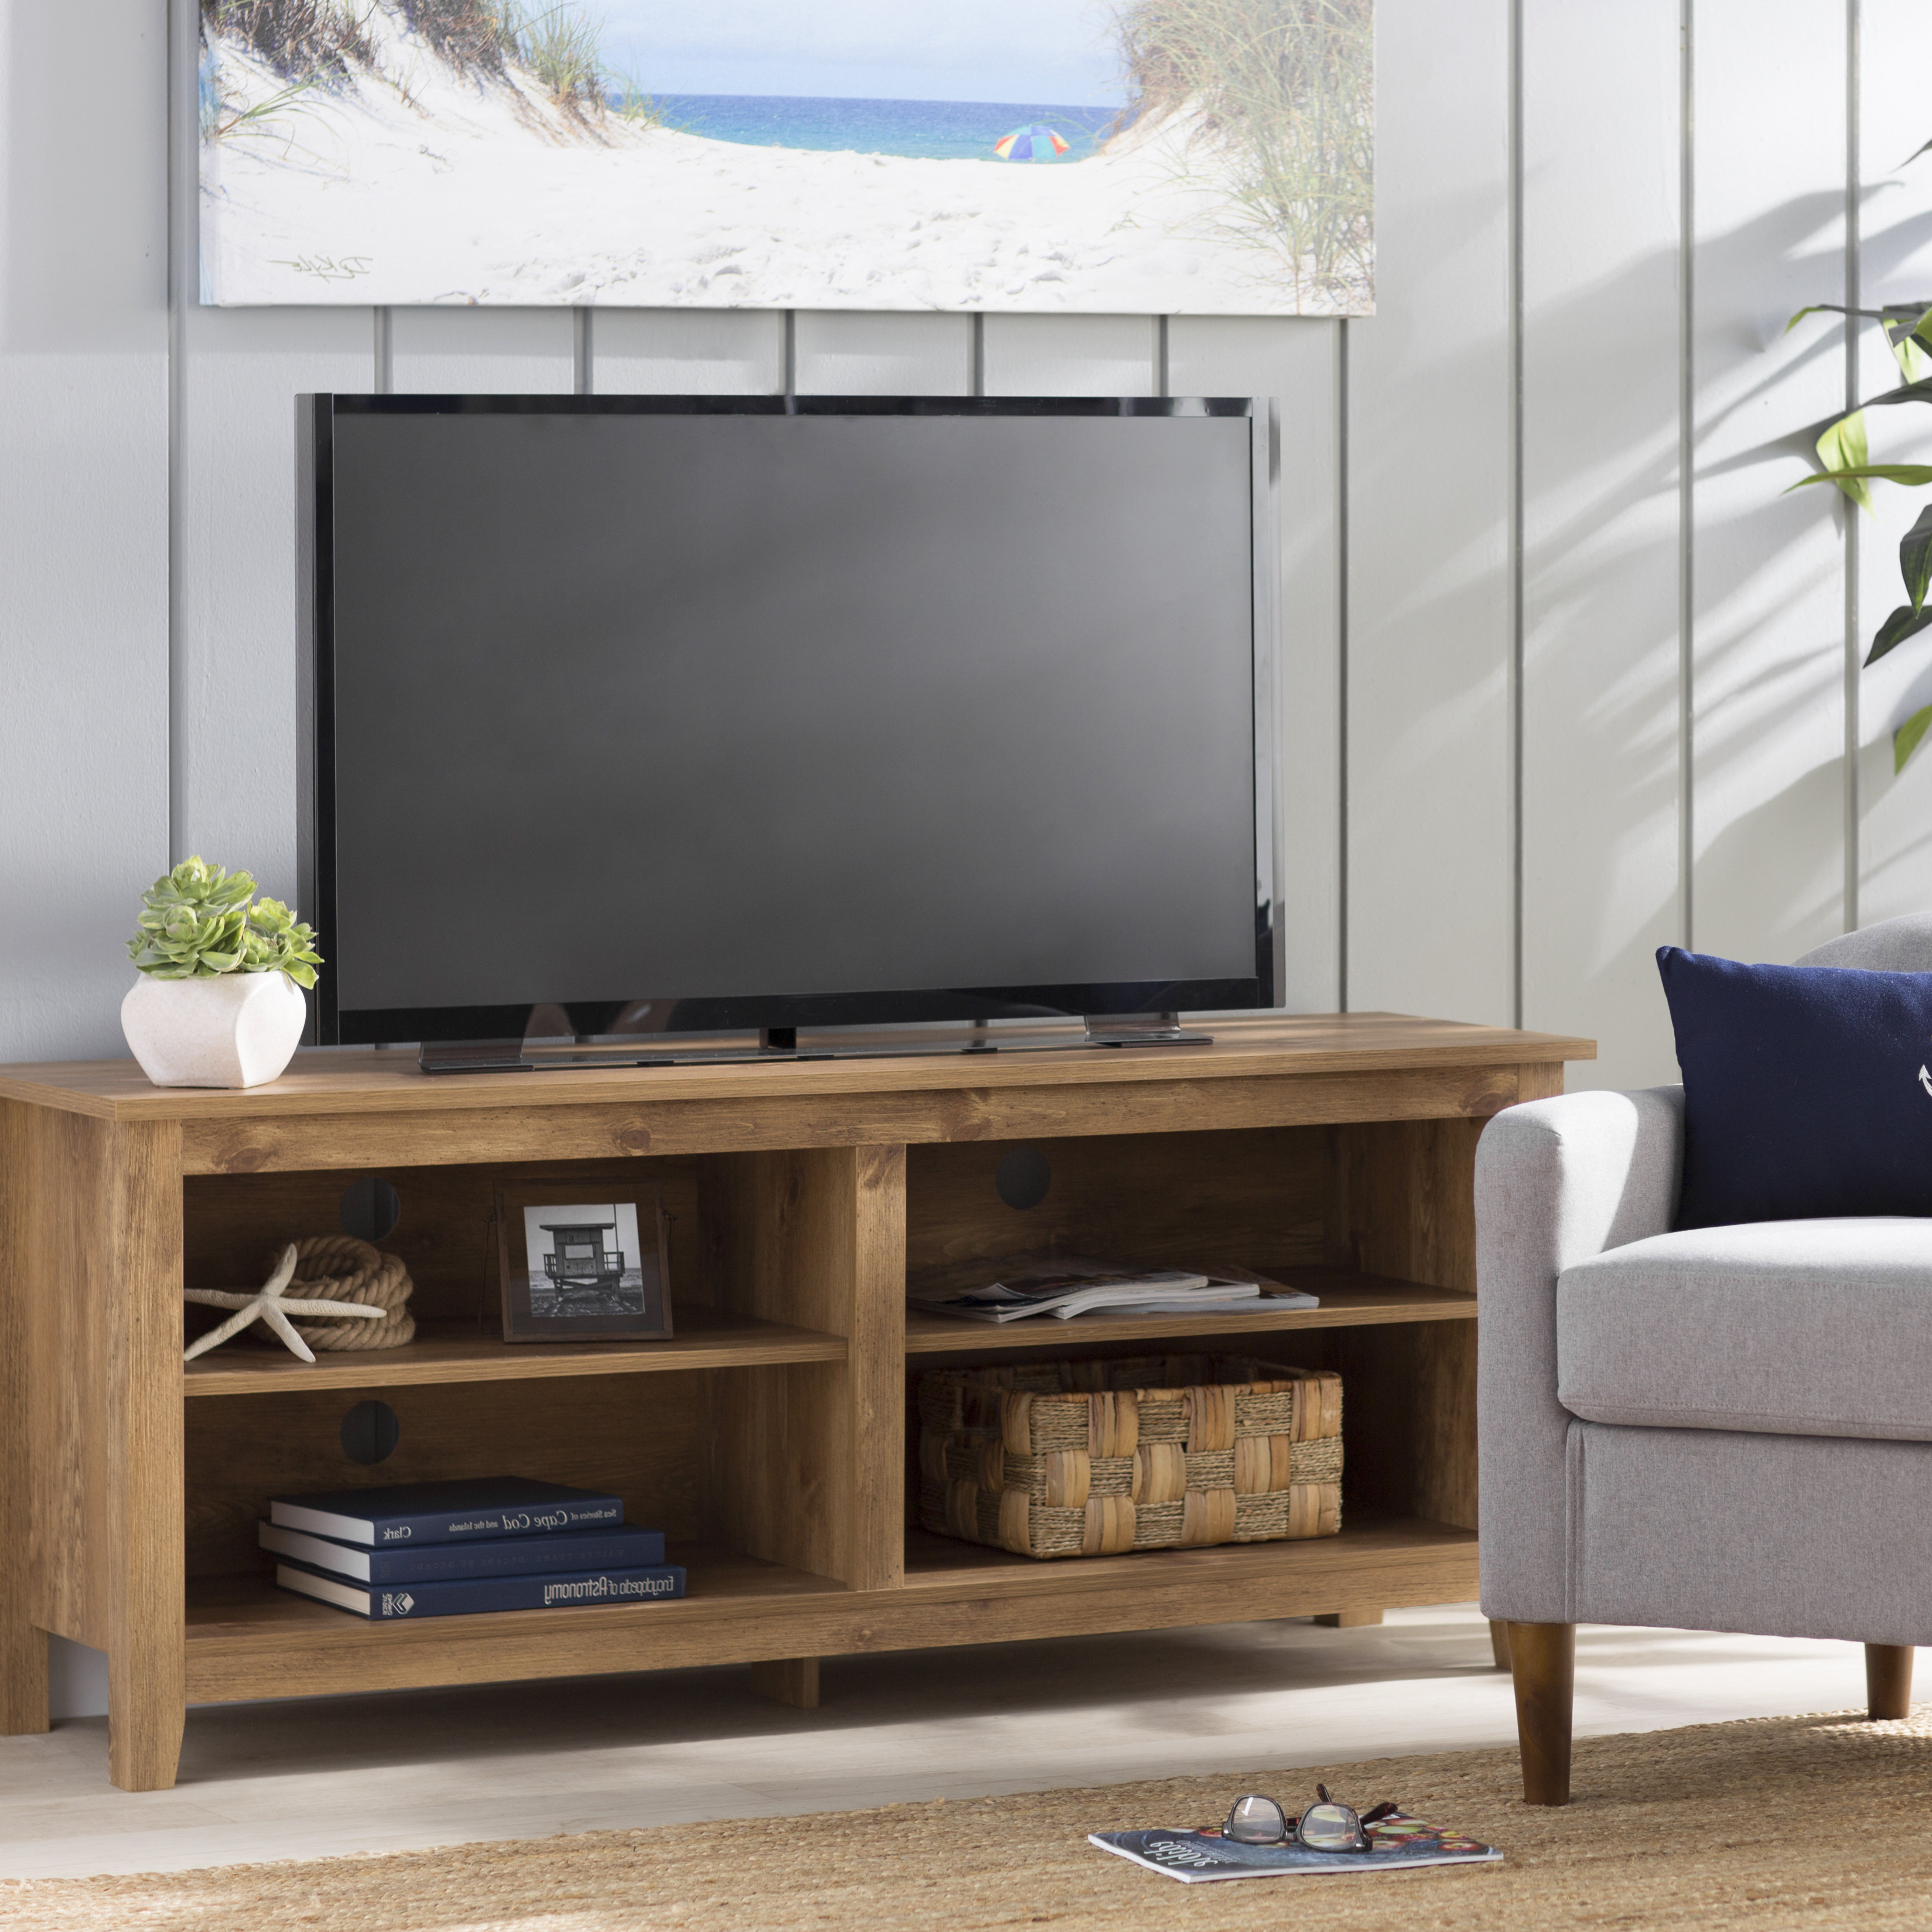 End Table And Tv Stand Set | Wayfair For Combs 63 Inch Tv Stands (View 3 of 20)